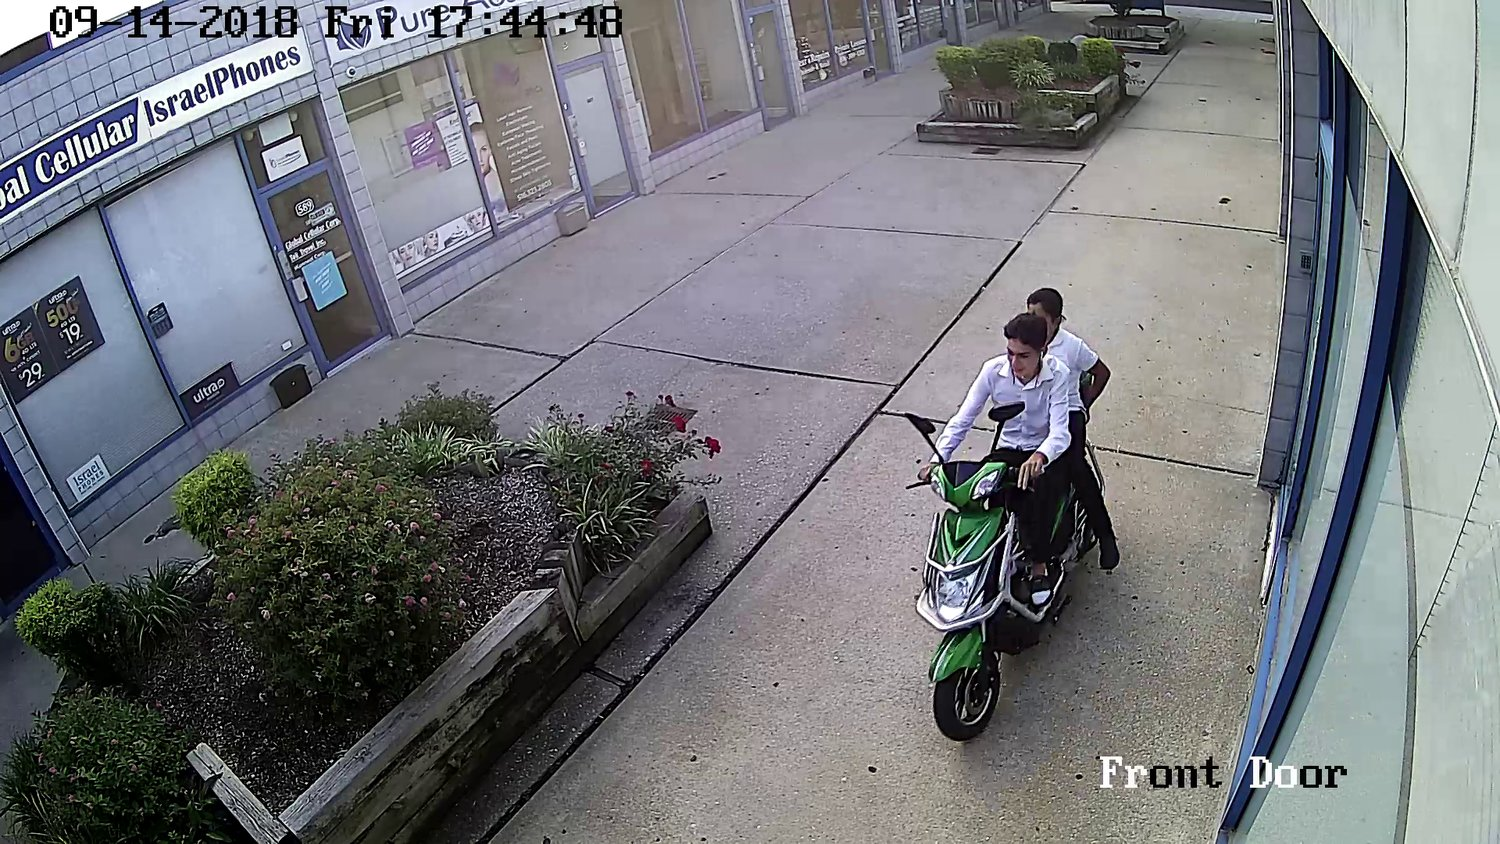 The driver and passenger on a green electric motorized scooter that allegedly struck a 54-year-old man on Central Avenue in Cedarhurst on Sept. 14.